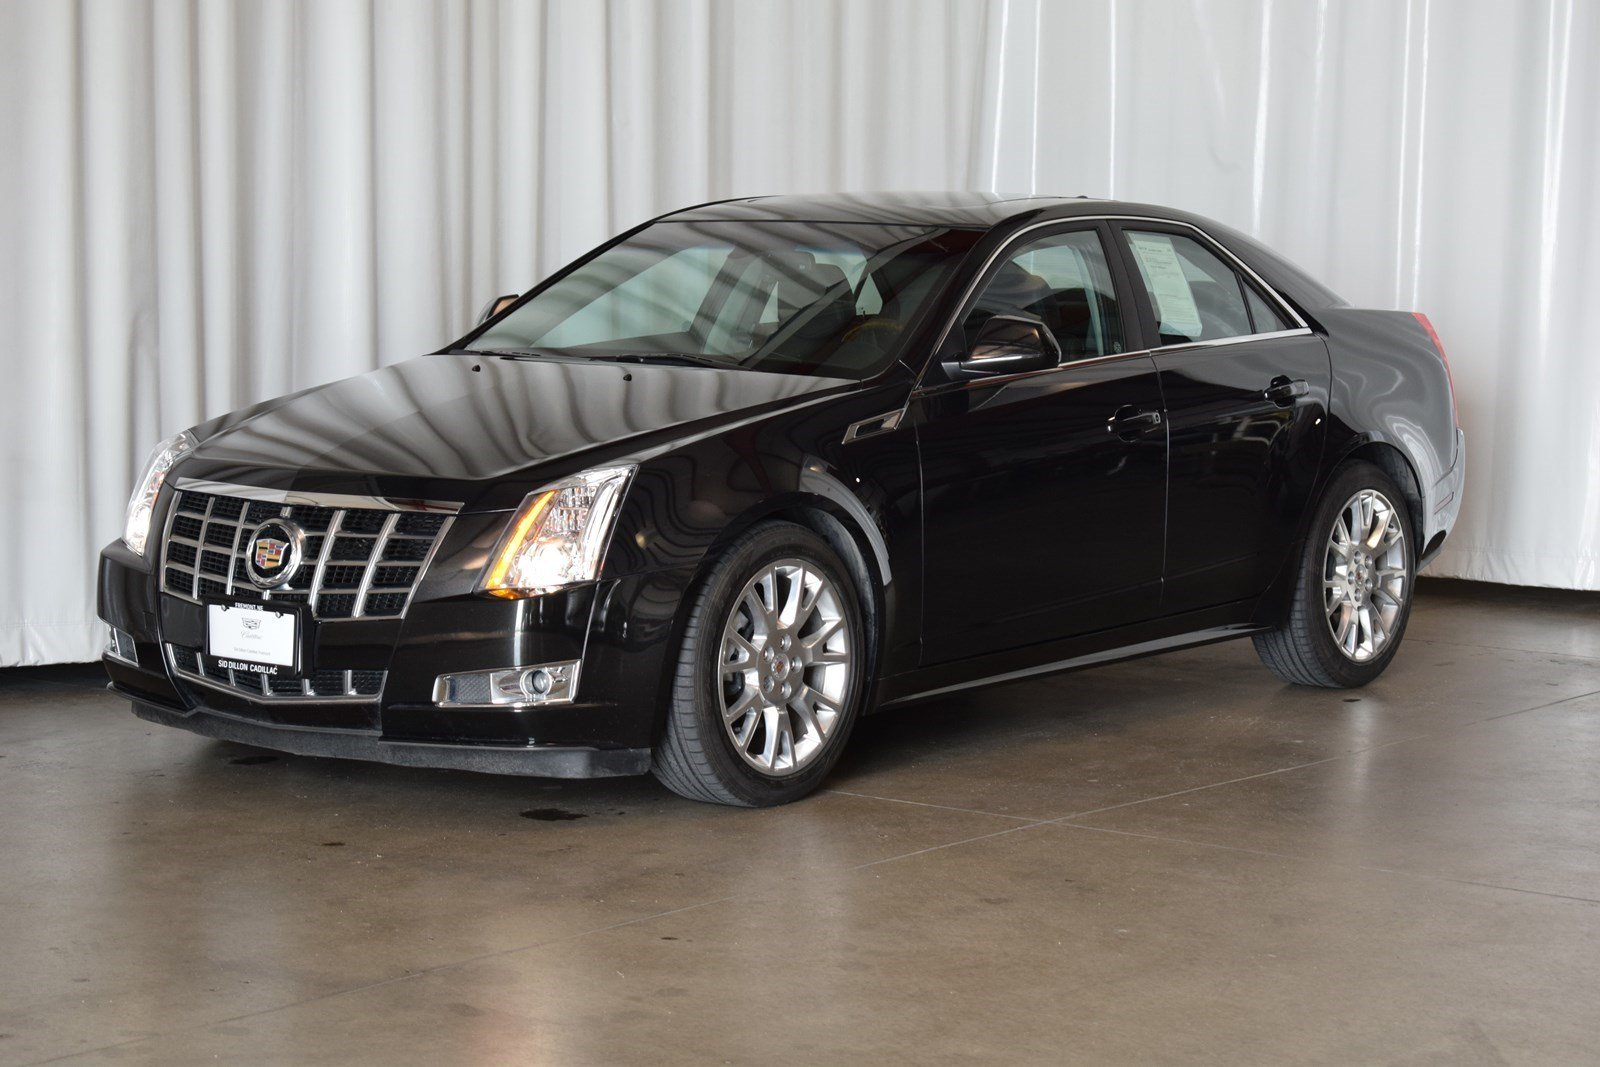 Pre Owned 2013 Cadillac Cts Premium 4 Door Sedan In Fremont 2u15738 1989 Subaru Gl Fuel Filter Location